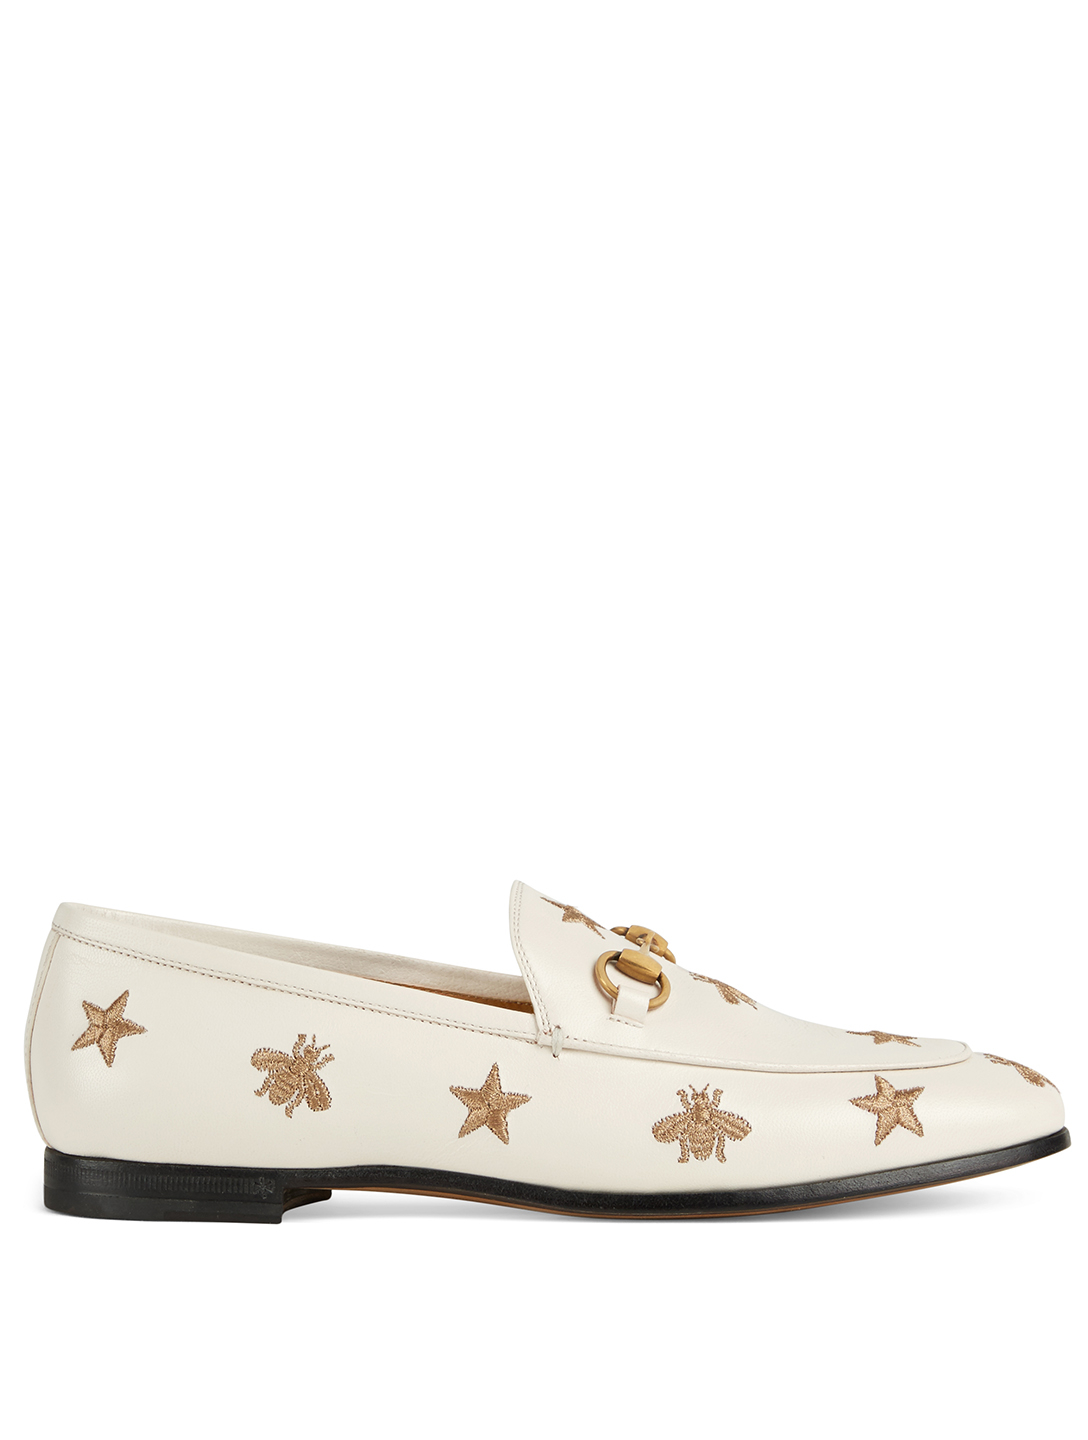 GUCCI Jordaan Embroidered Leather Loafers Women's White